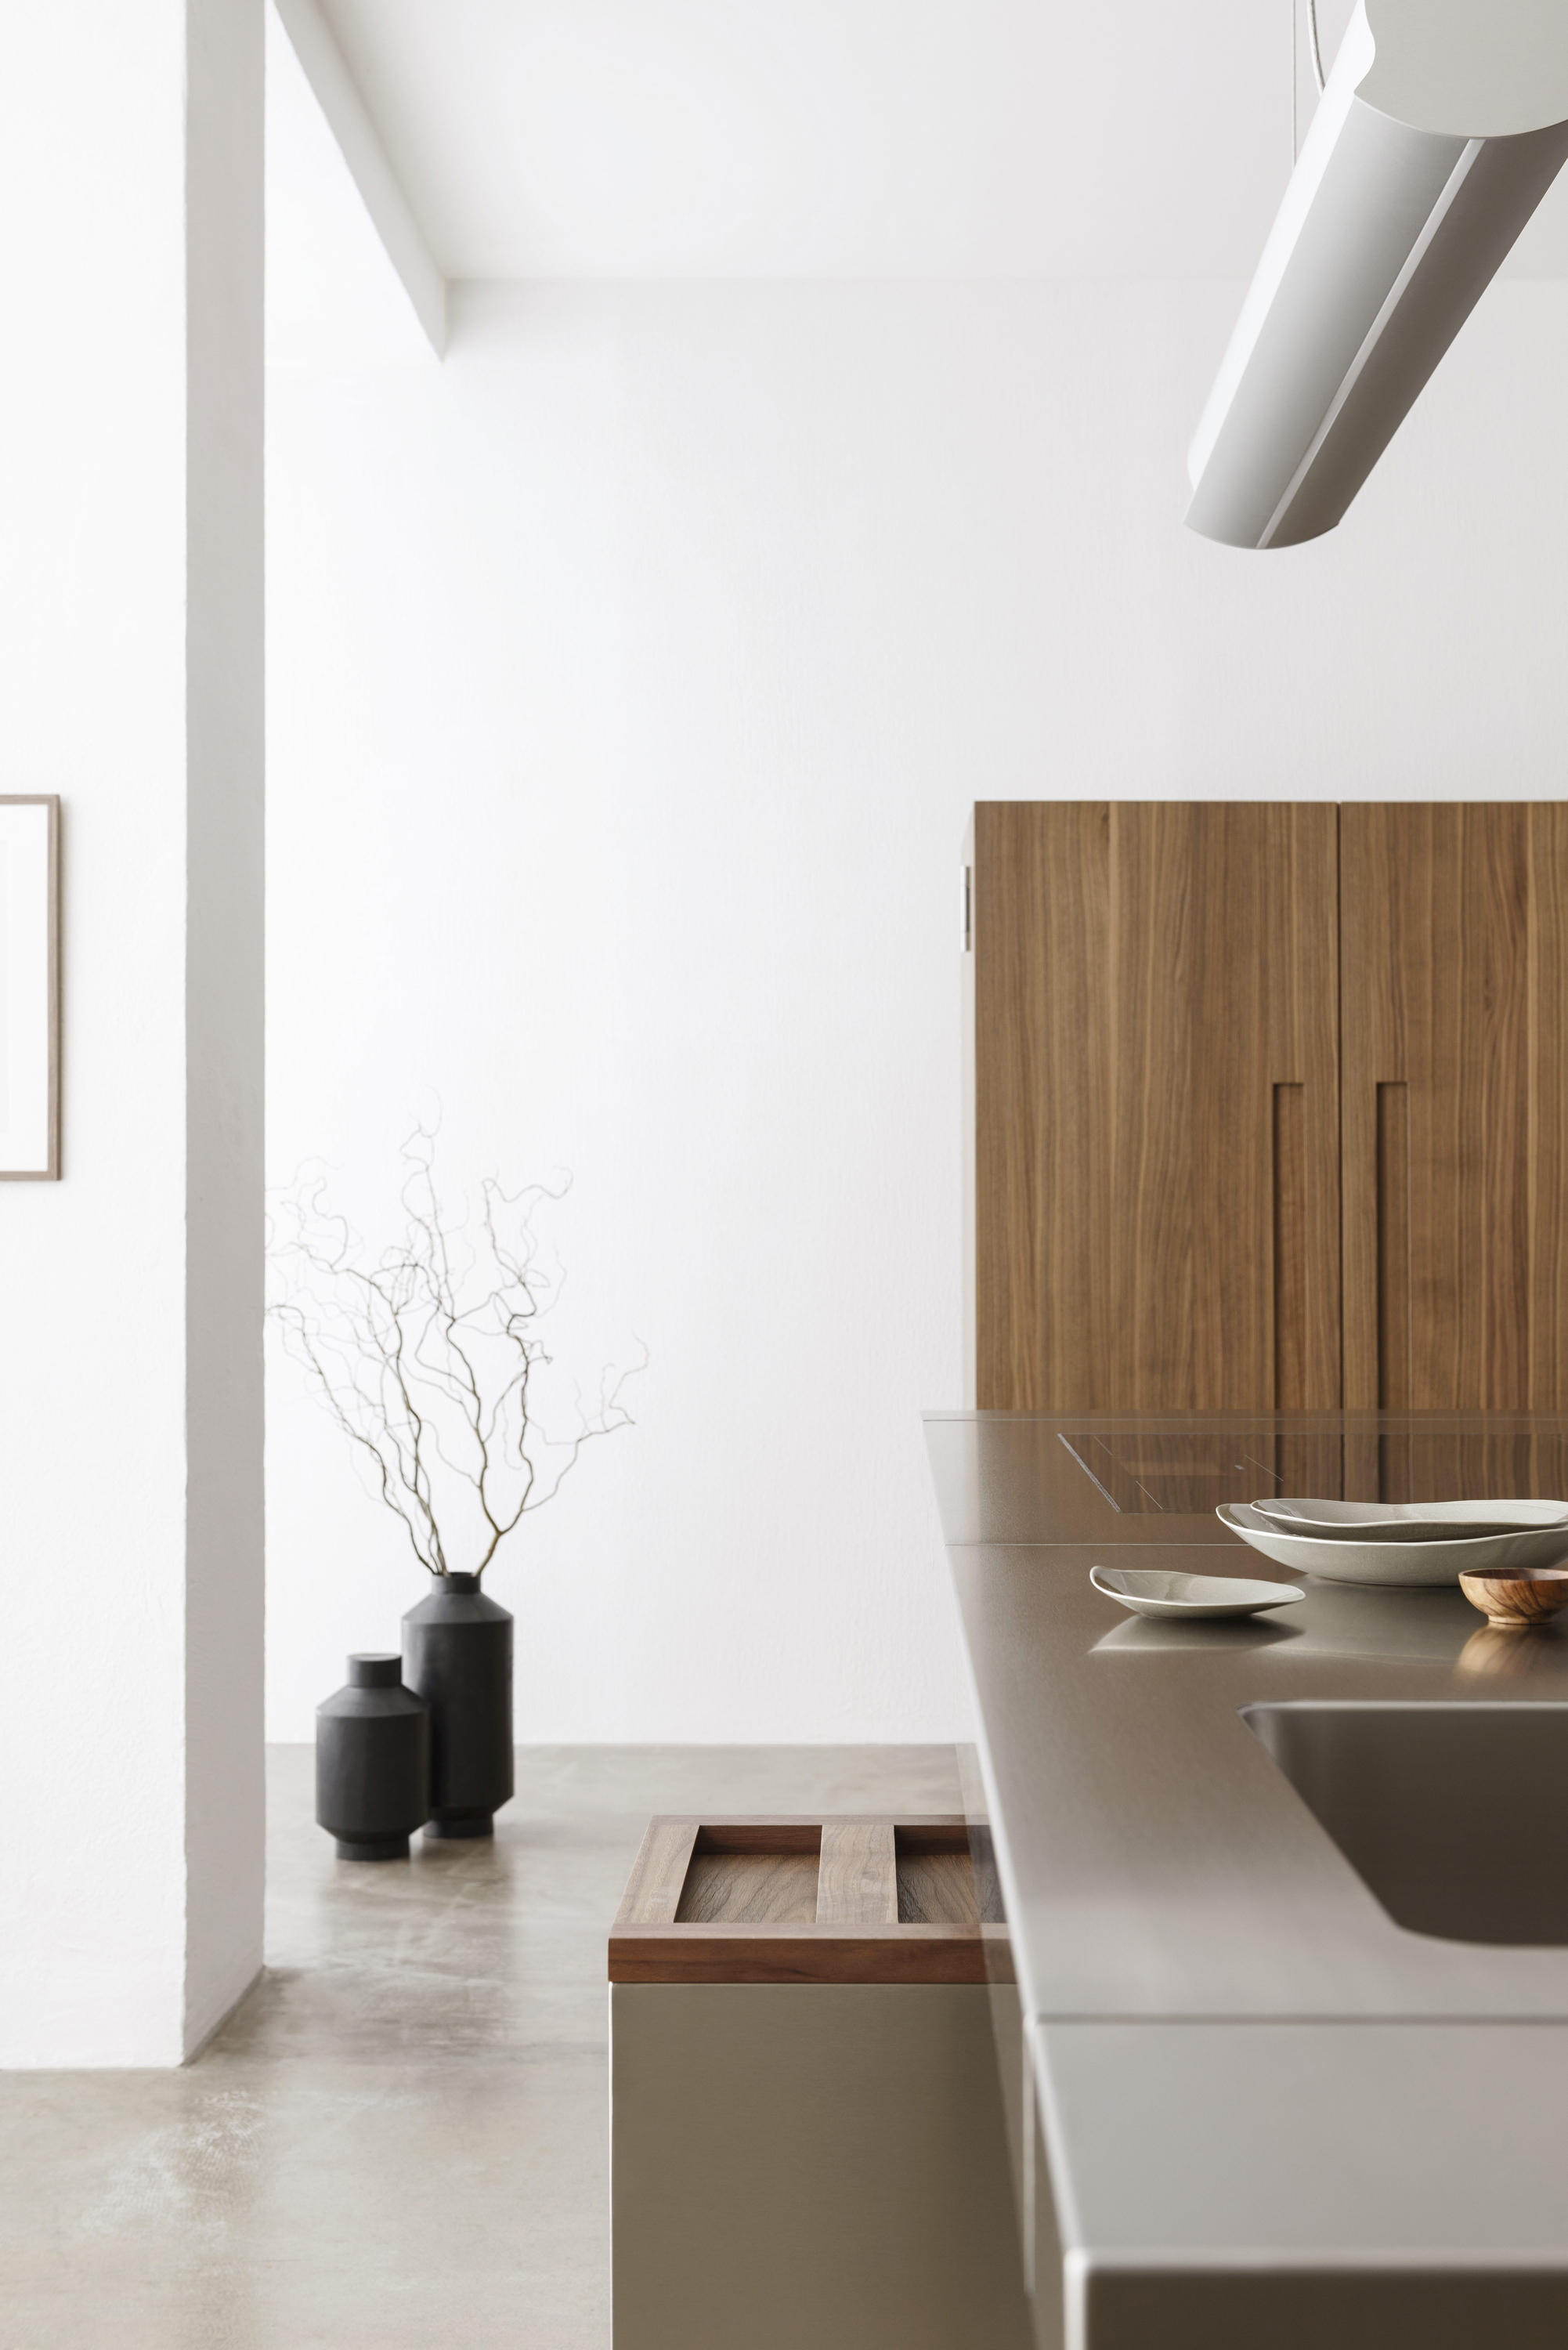 Bulthaup B2 B2 Modular Kitchens From Bulthaup Architonic